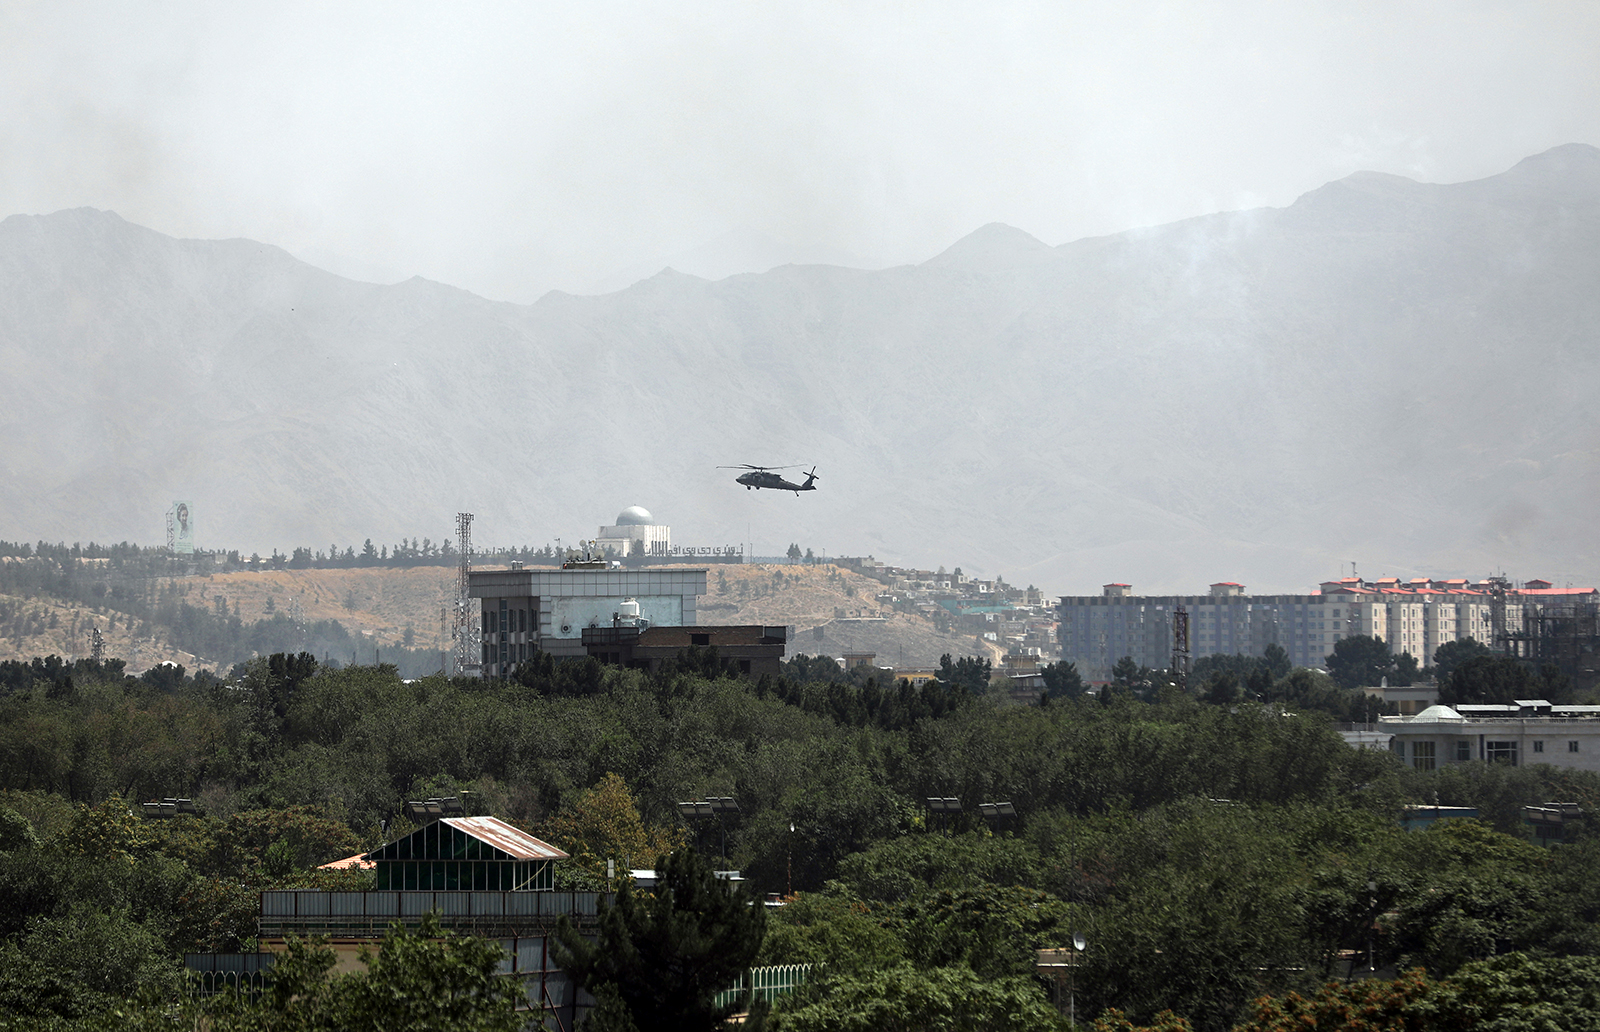 A US Black Hawk military helicopter flies over the city of Kabul, Afghanistan, on August 15.